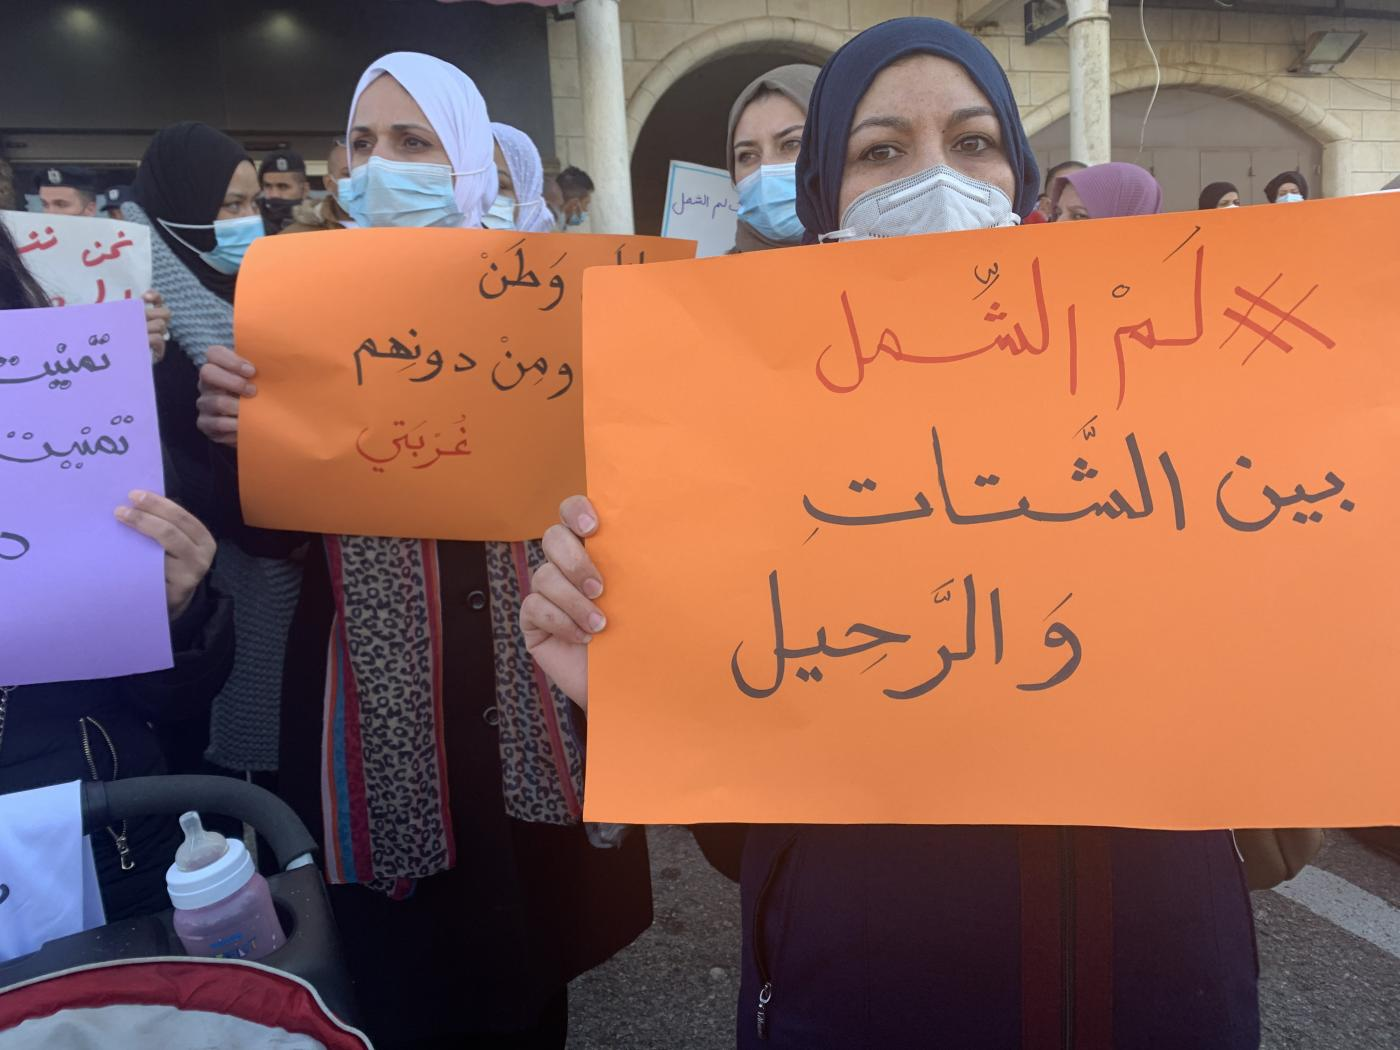 Israel: Thousands of unregistered Palestinians fear deportation, separation from families